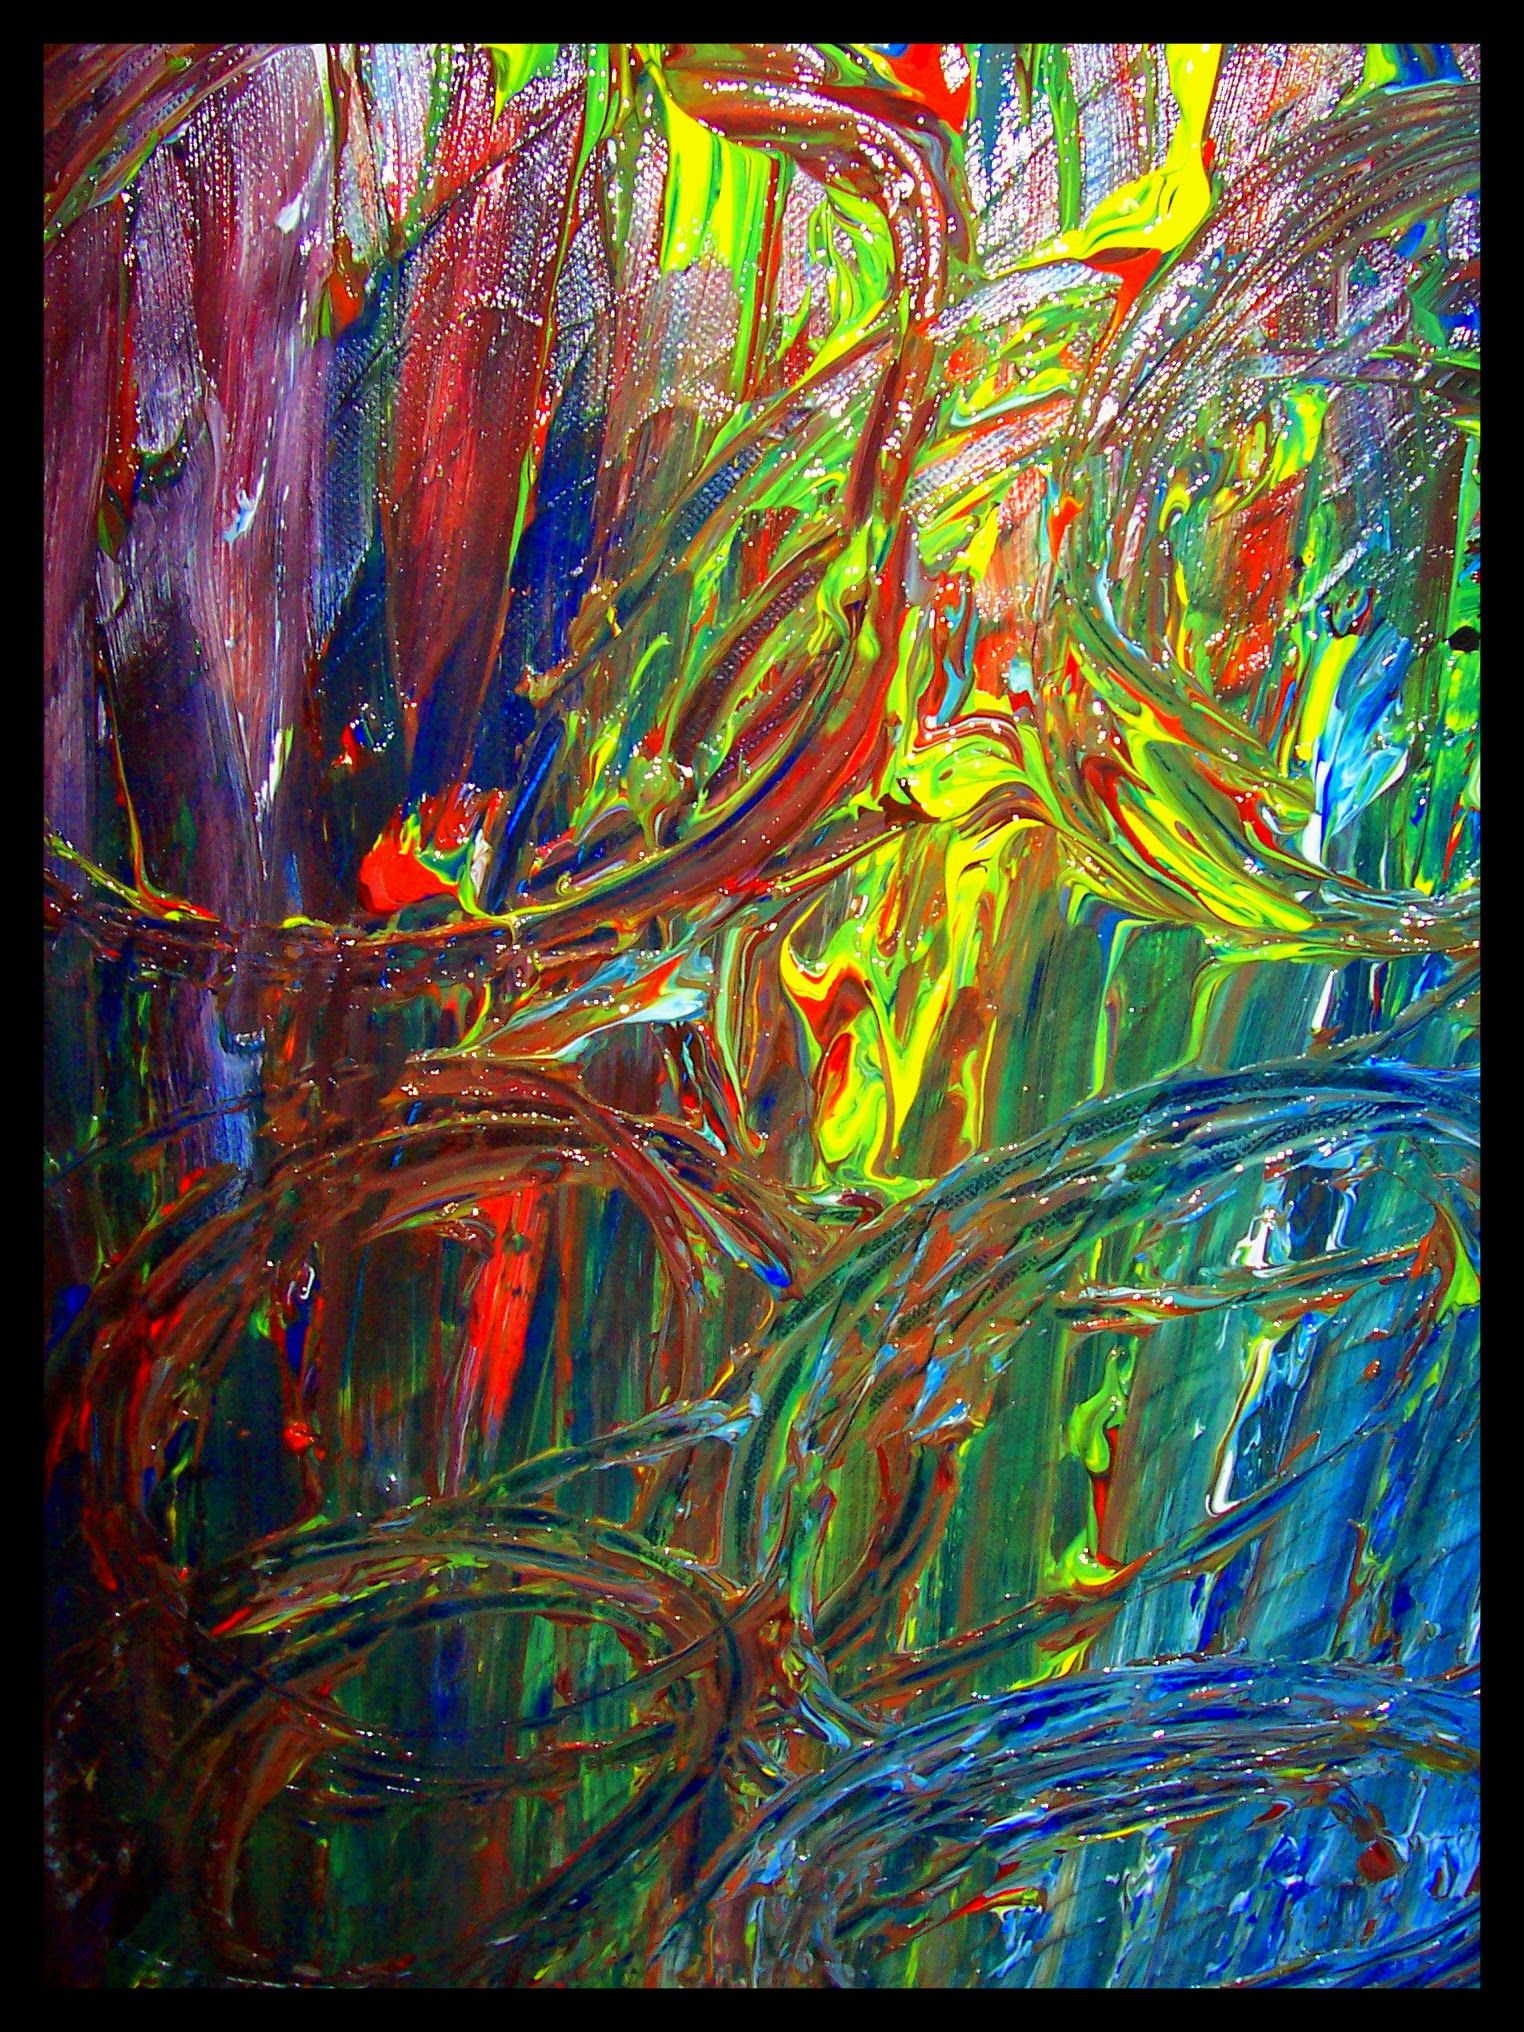 pin by trey coppland art and design on abstract art work, chaos by